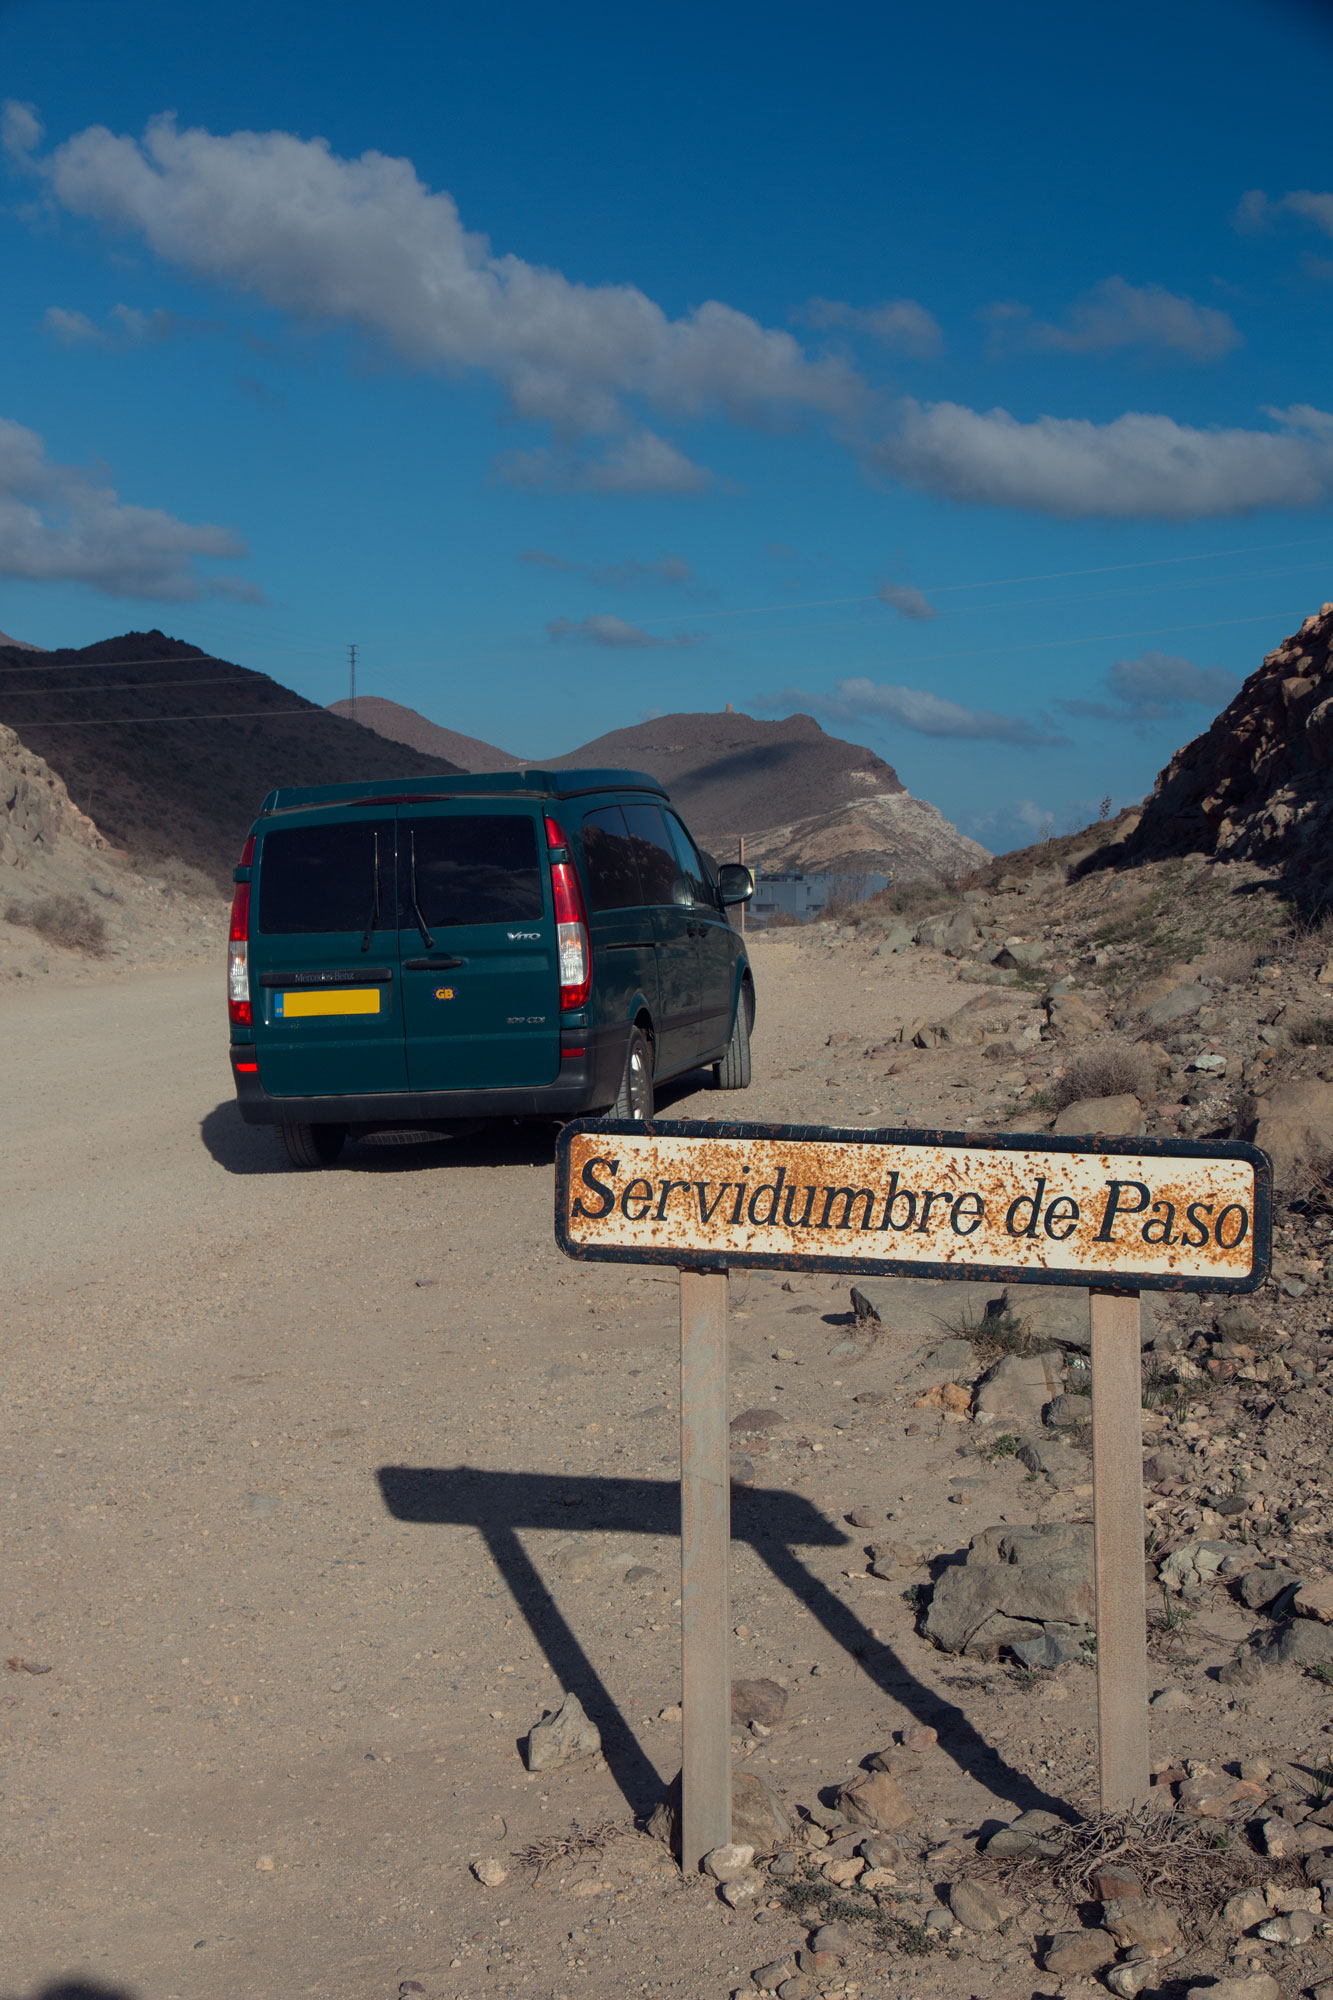 Karen the Van on the road to Playa de Los Genoveses... she loves a bit of off-roading. Dale constantly worries about her tyres though!